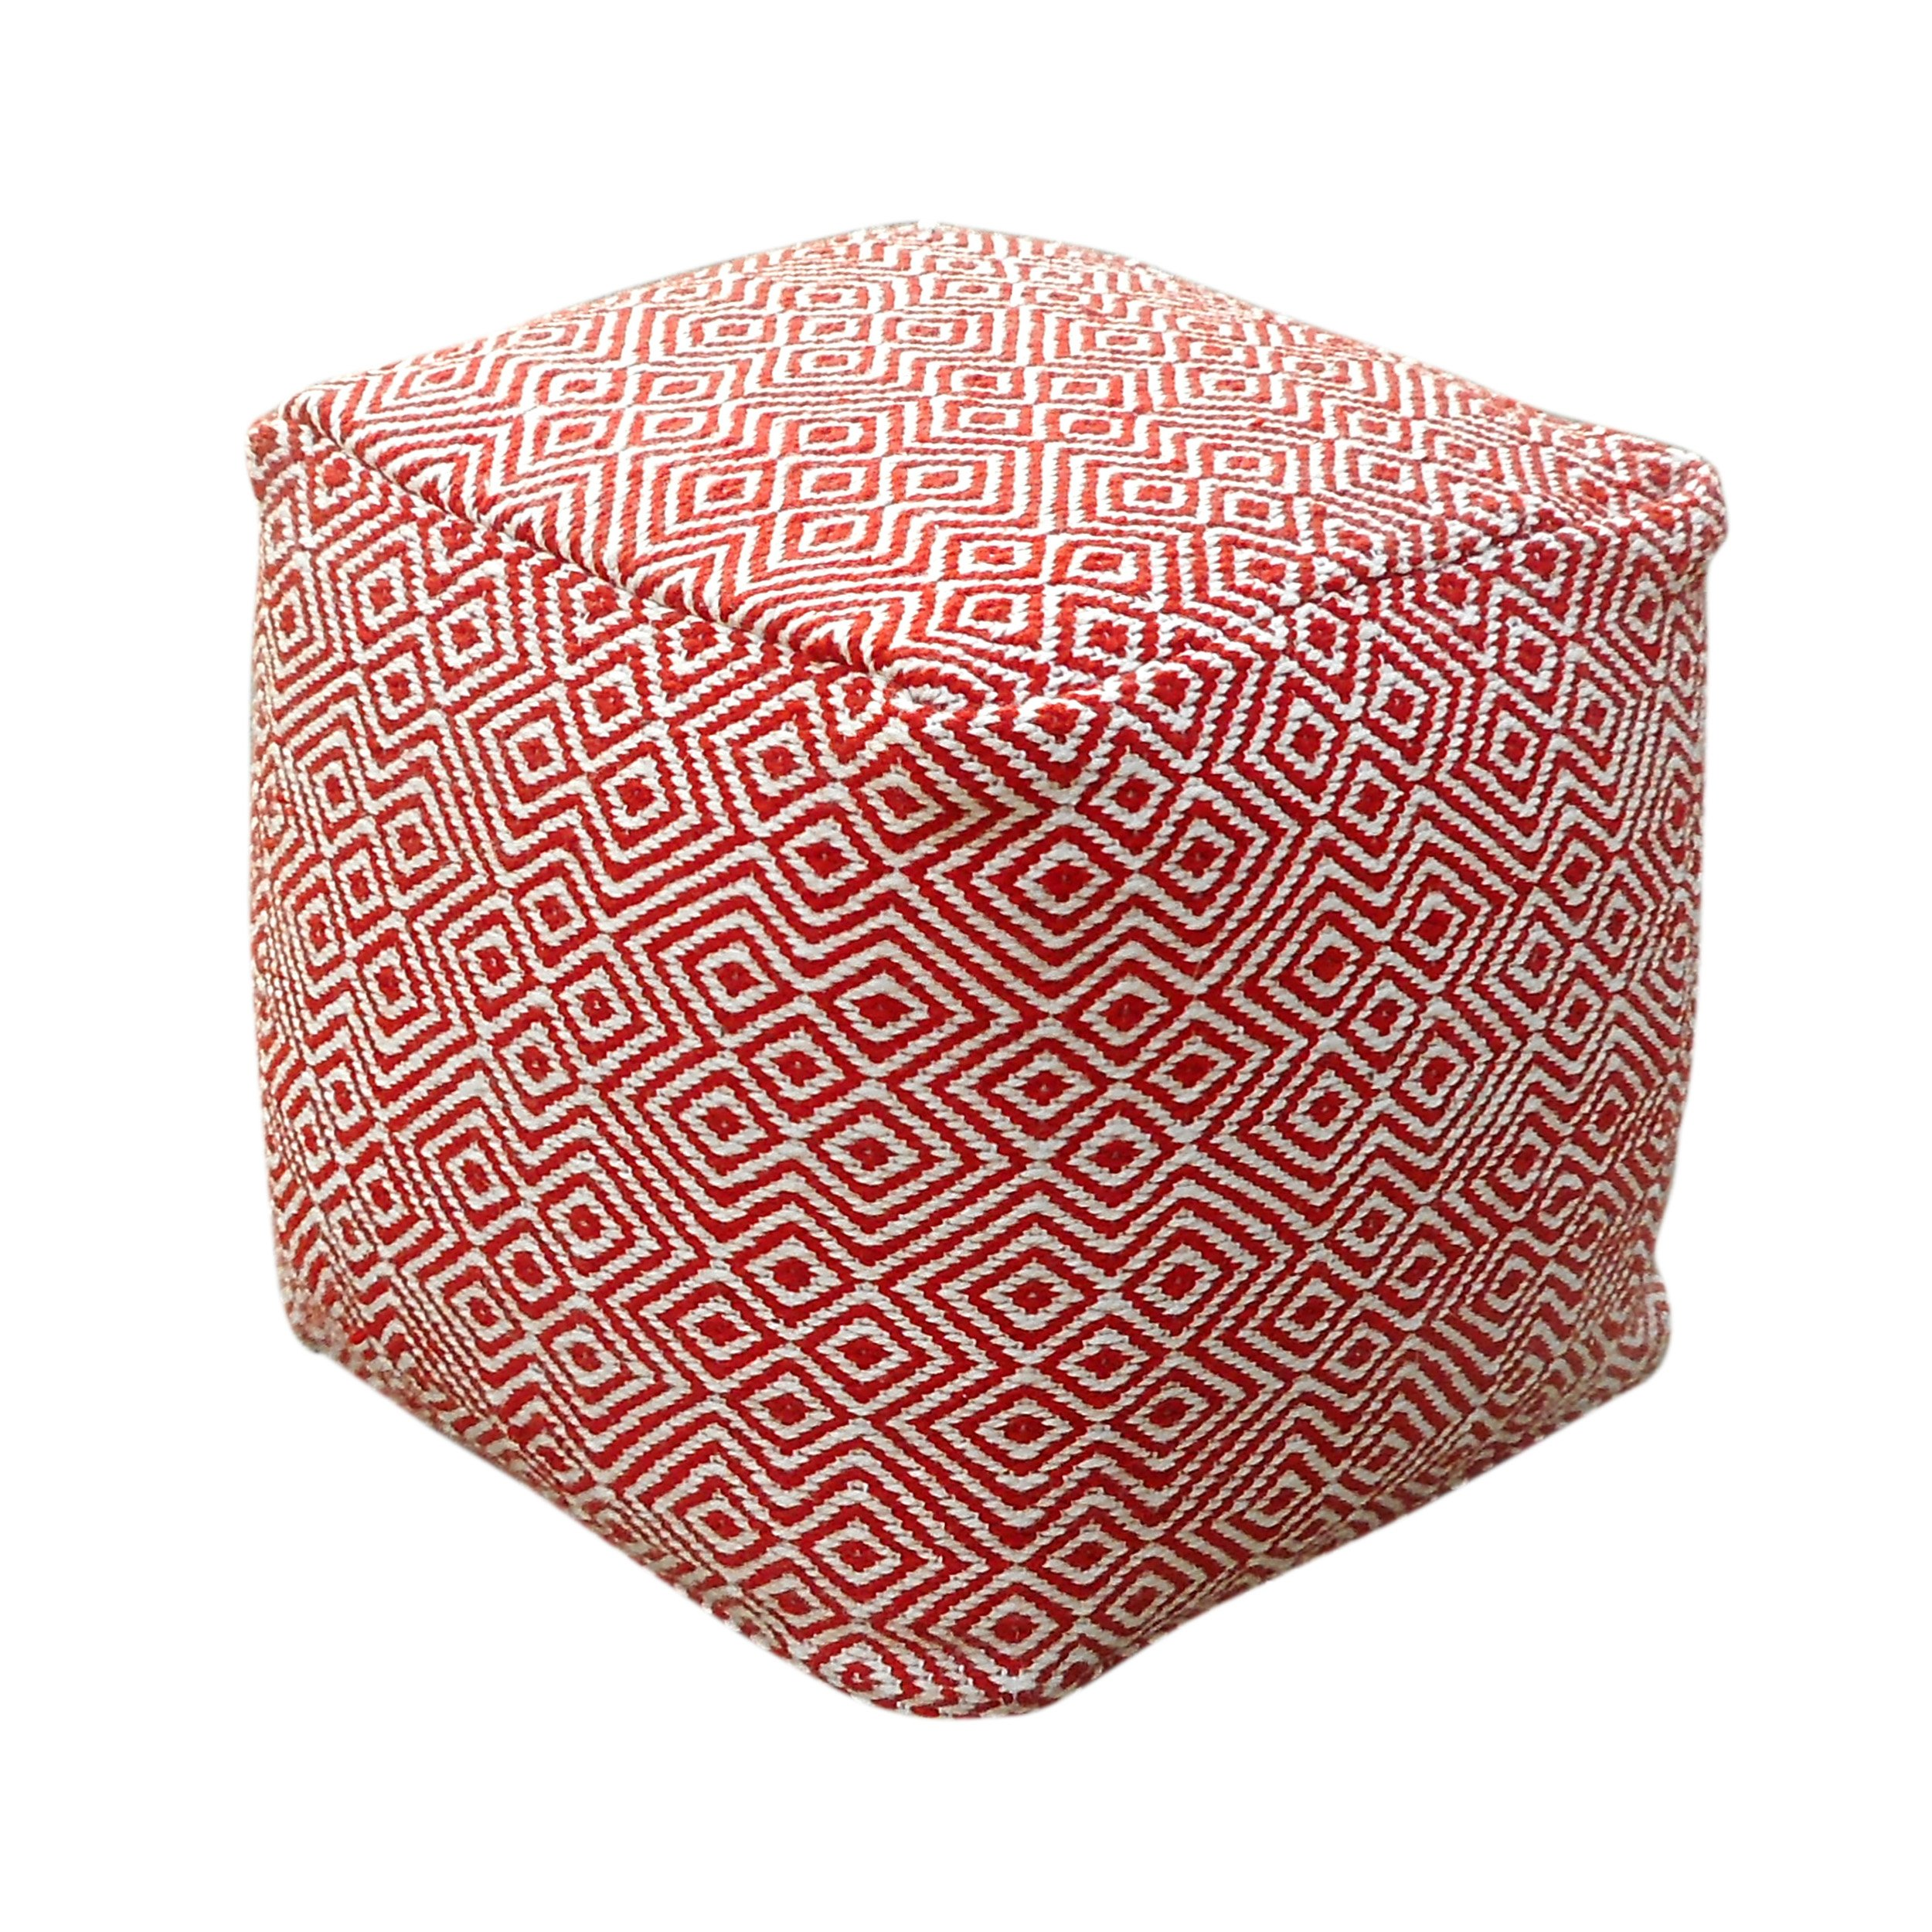 Great Deal Furniture 304840 Alston Outdoor Modern Boho Pouf, Ivory with Red